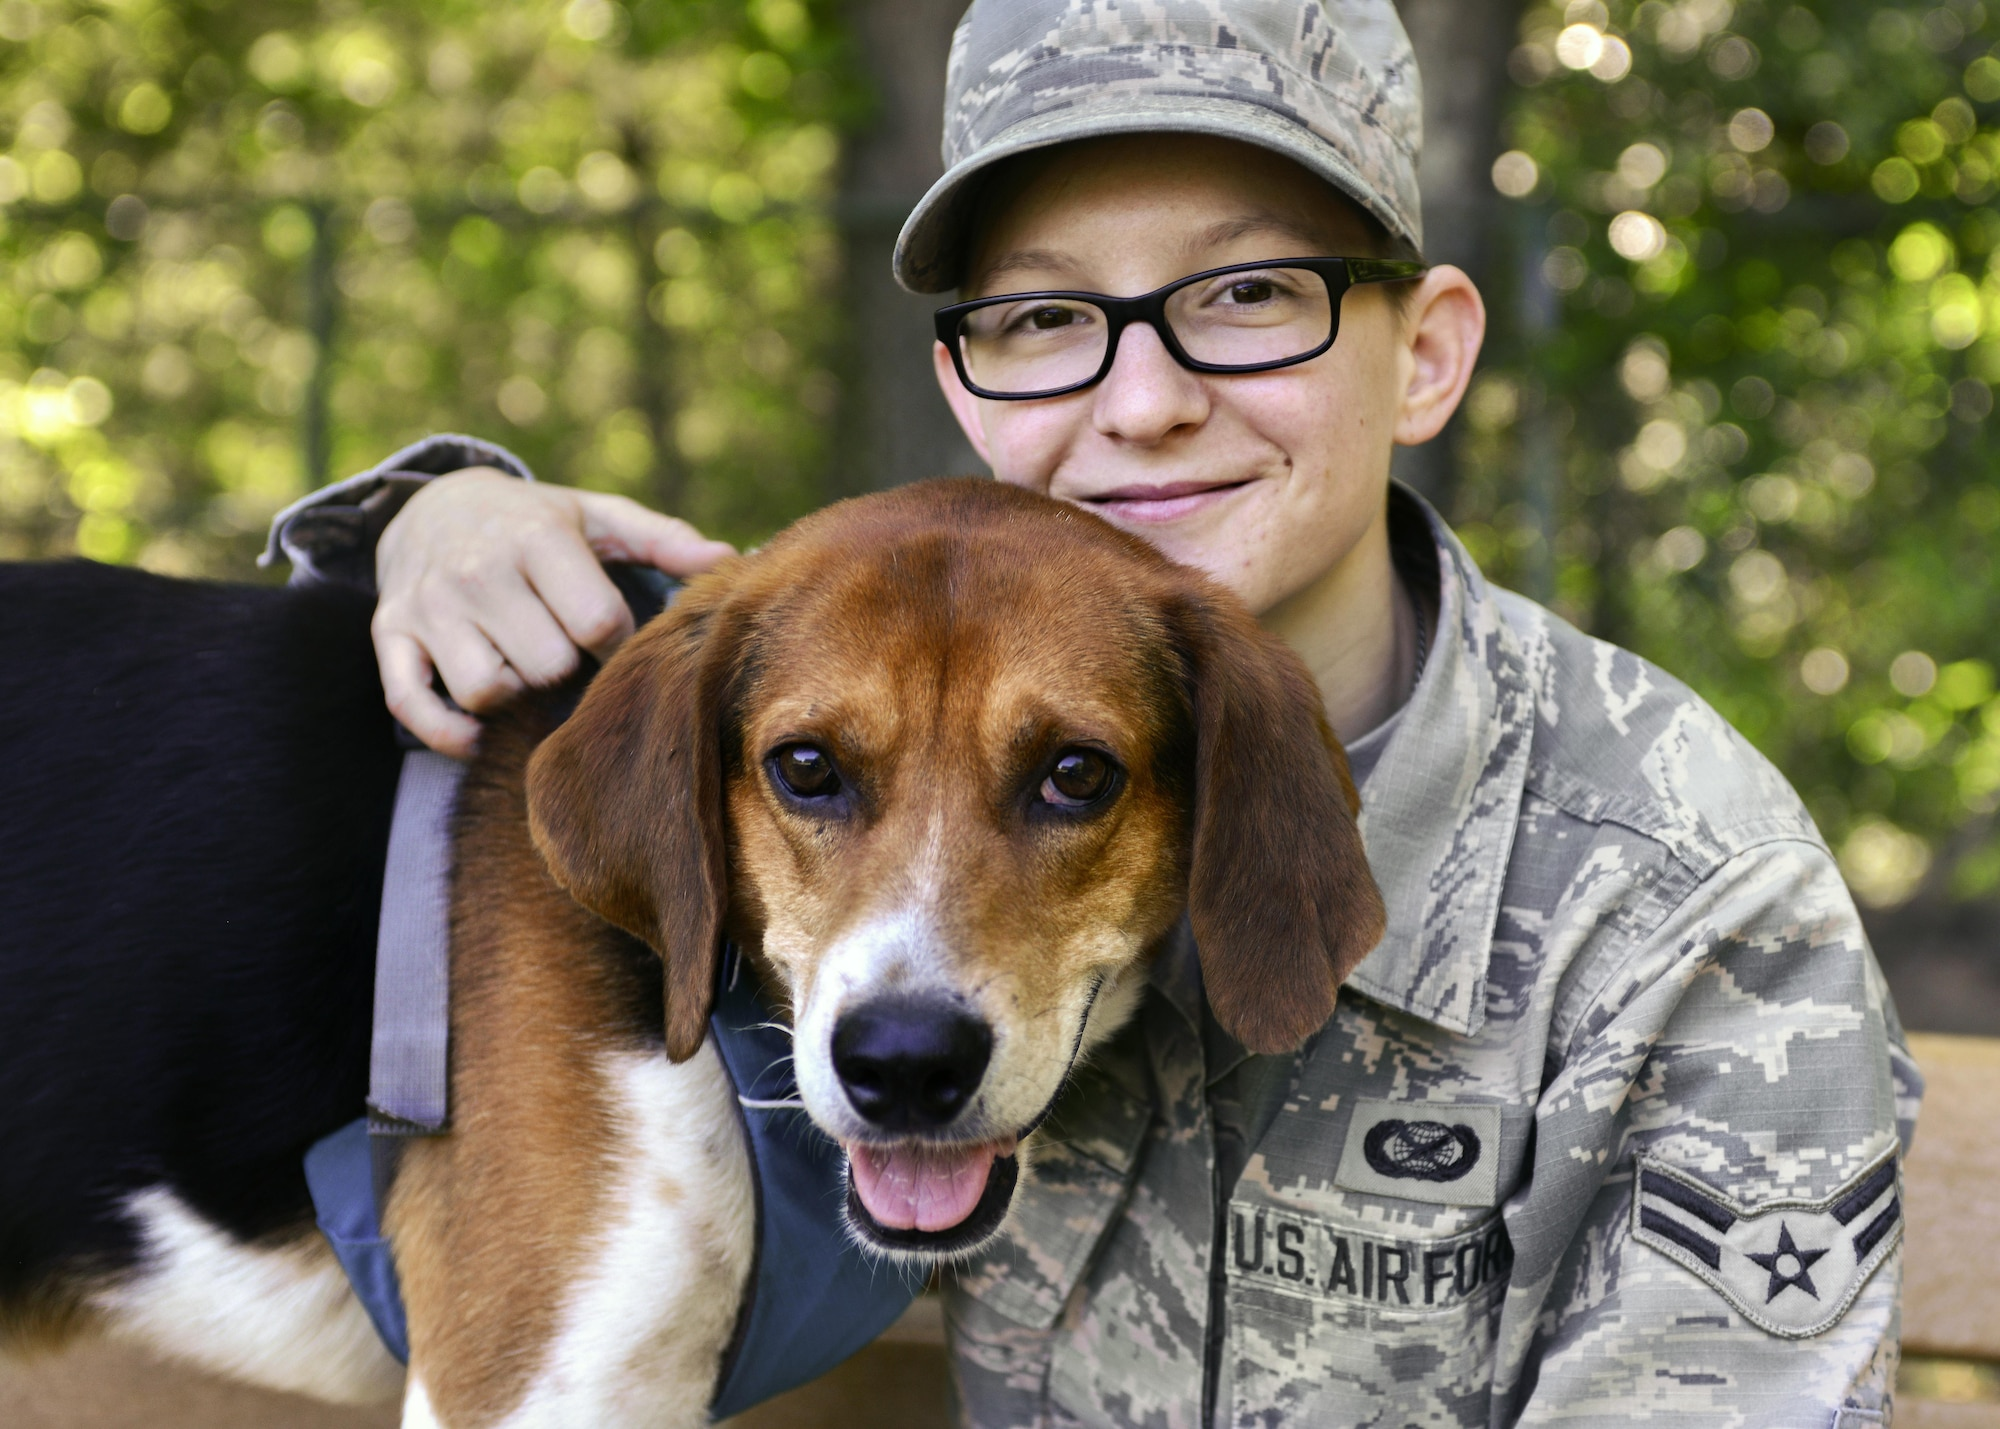 """U.S. Air Force Airman 1st Class Kaylee Dubois, 633rd Air Base Wing Public Affairs photojournalist, spends time with her dog, Watson, at Joint Base Langley-Eustis, Va., May 9, 2017. Dubois spent roughly seven months in mental health treatment programs, and once she was successful in managing her own recovery process, she adopted a rescued dog, who now aids in her """"self treatment.""""(U.S. Air Force photo/Tech. Sgt. Katie Gar Ward)"""